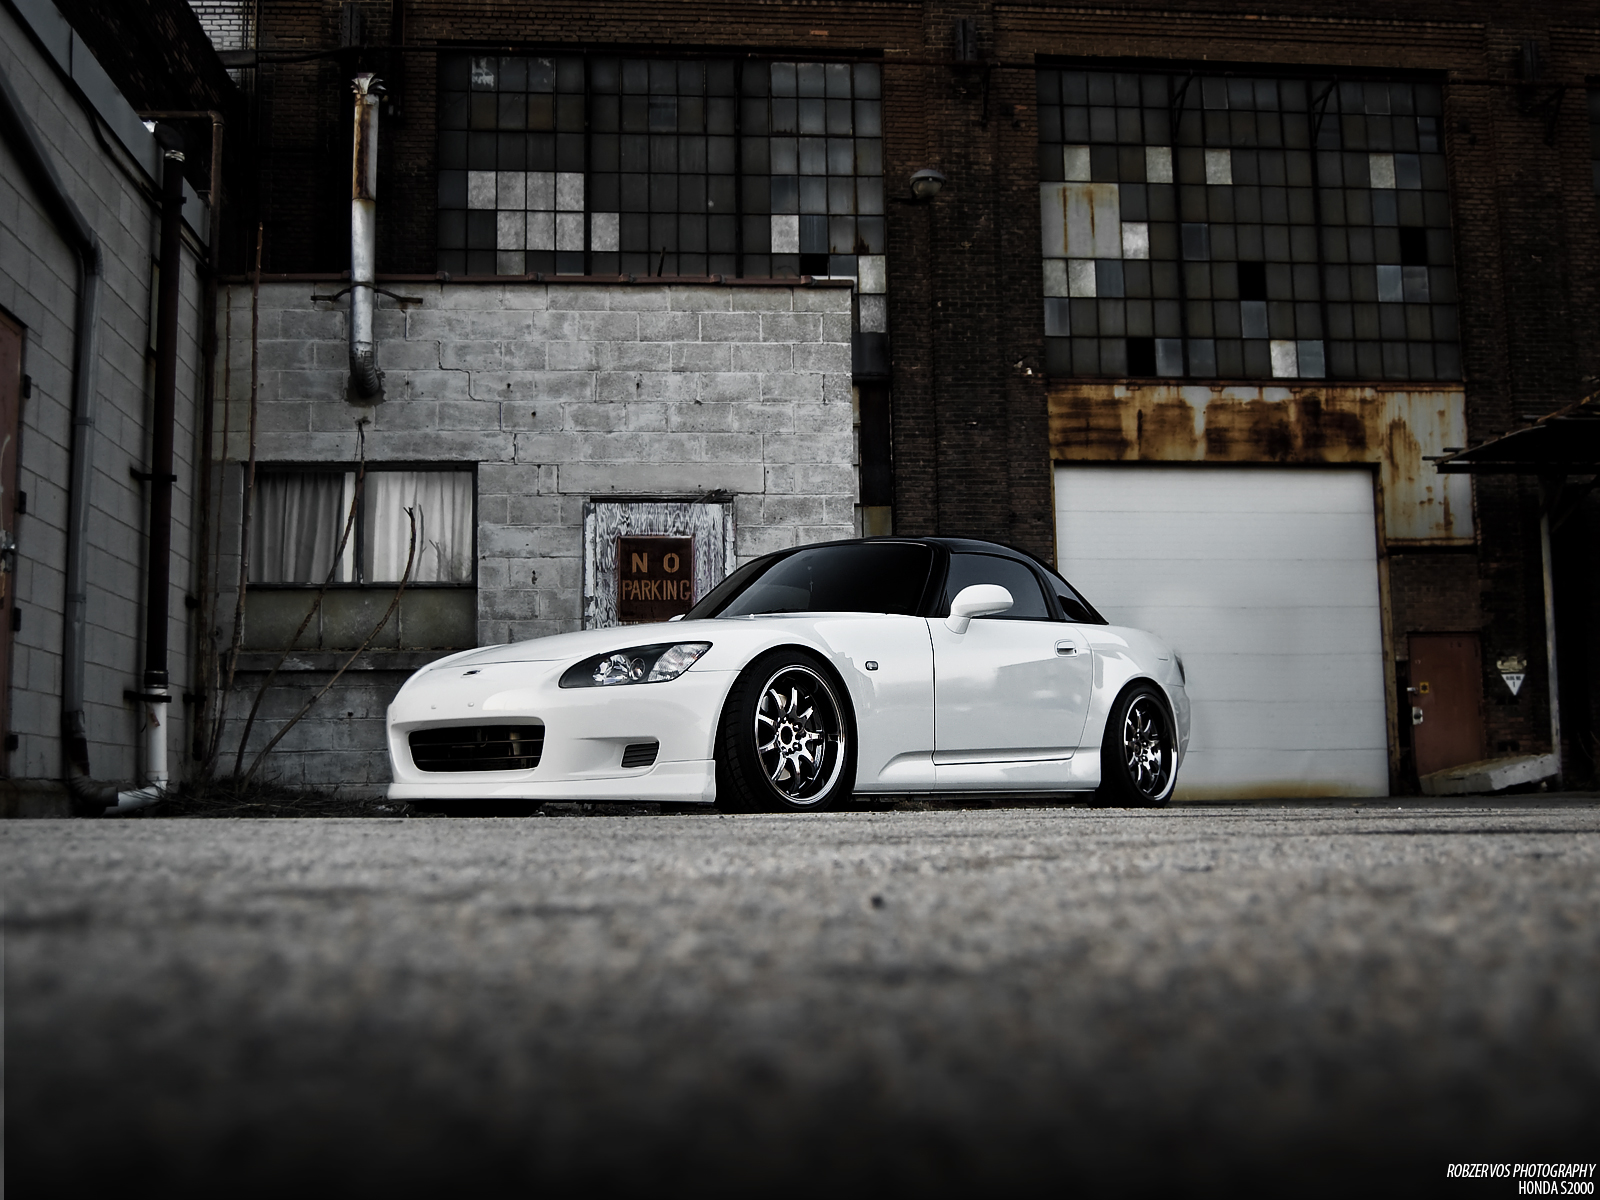 Honda s2000 Wallpapers